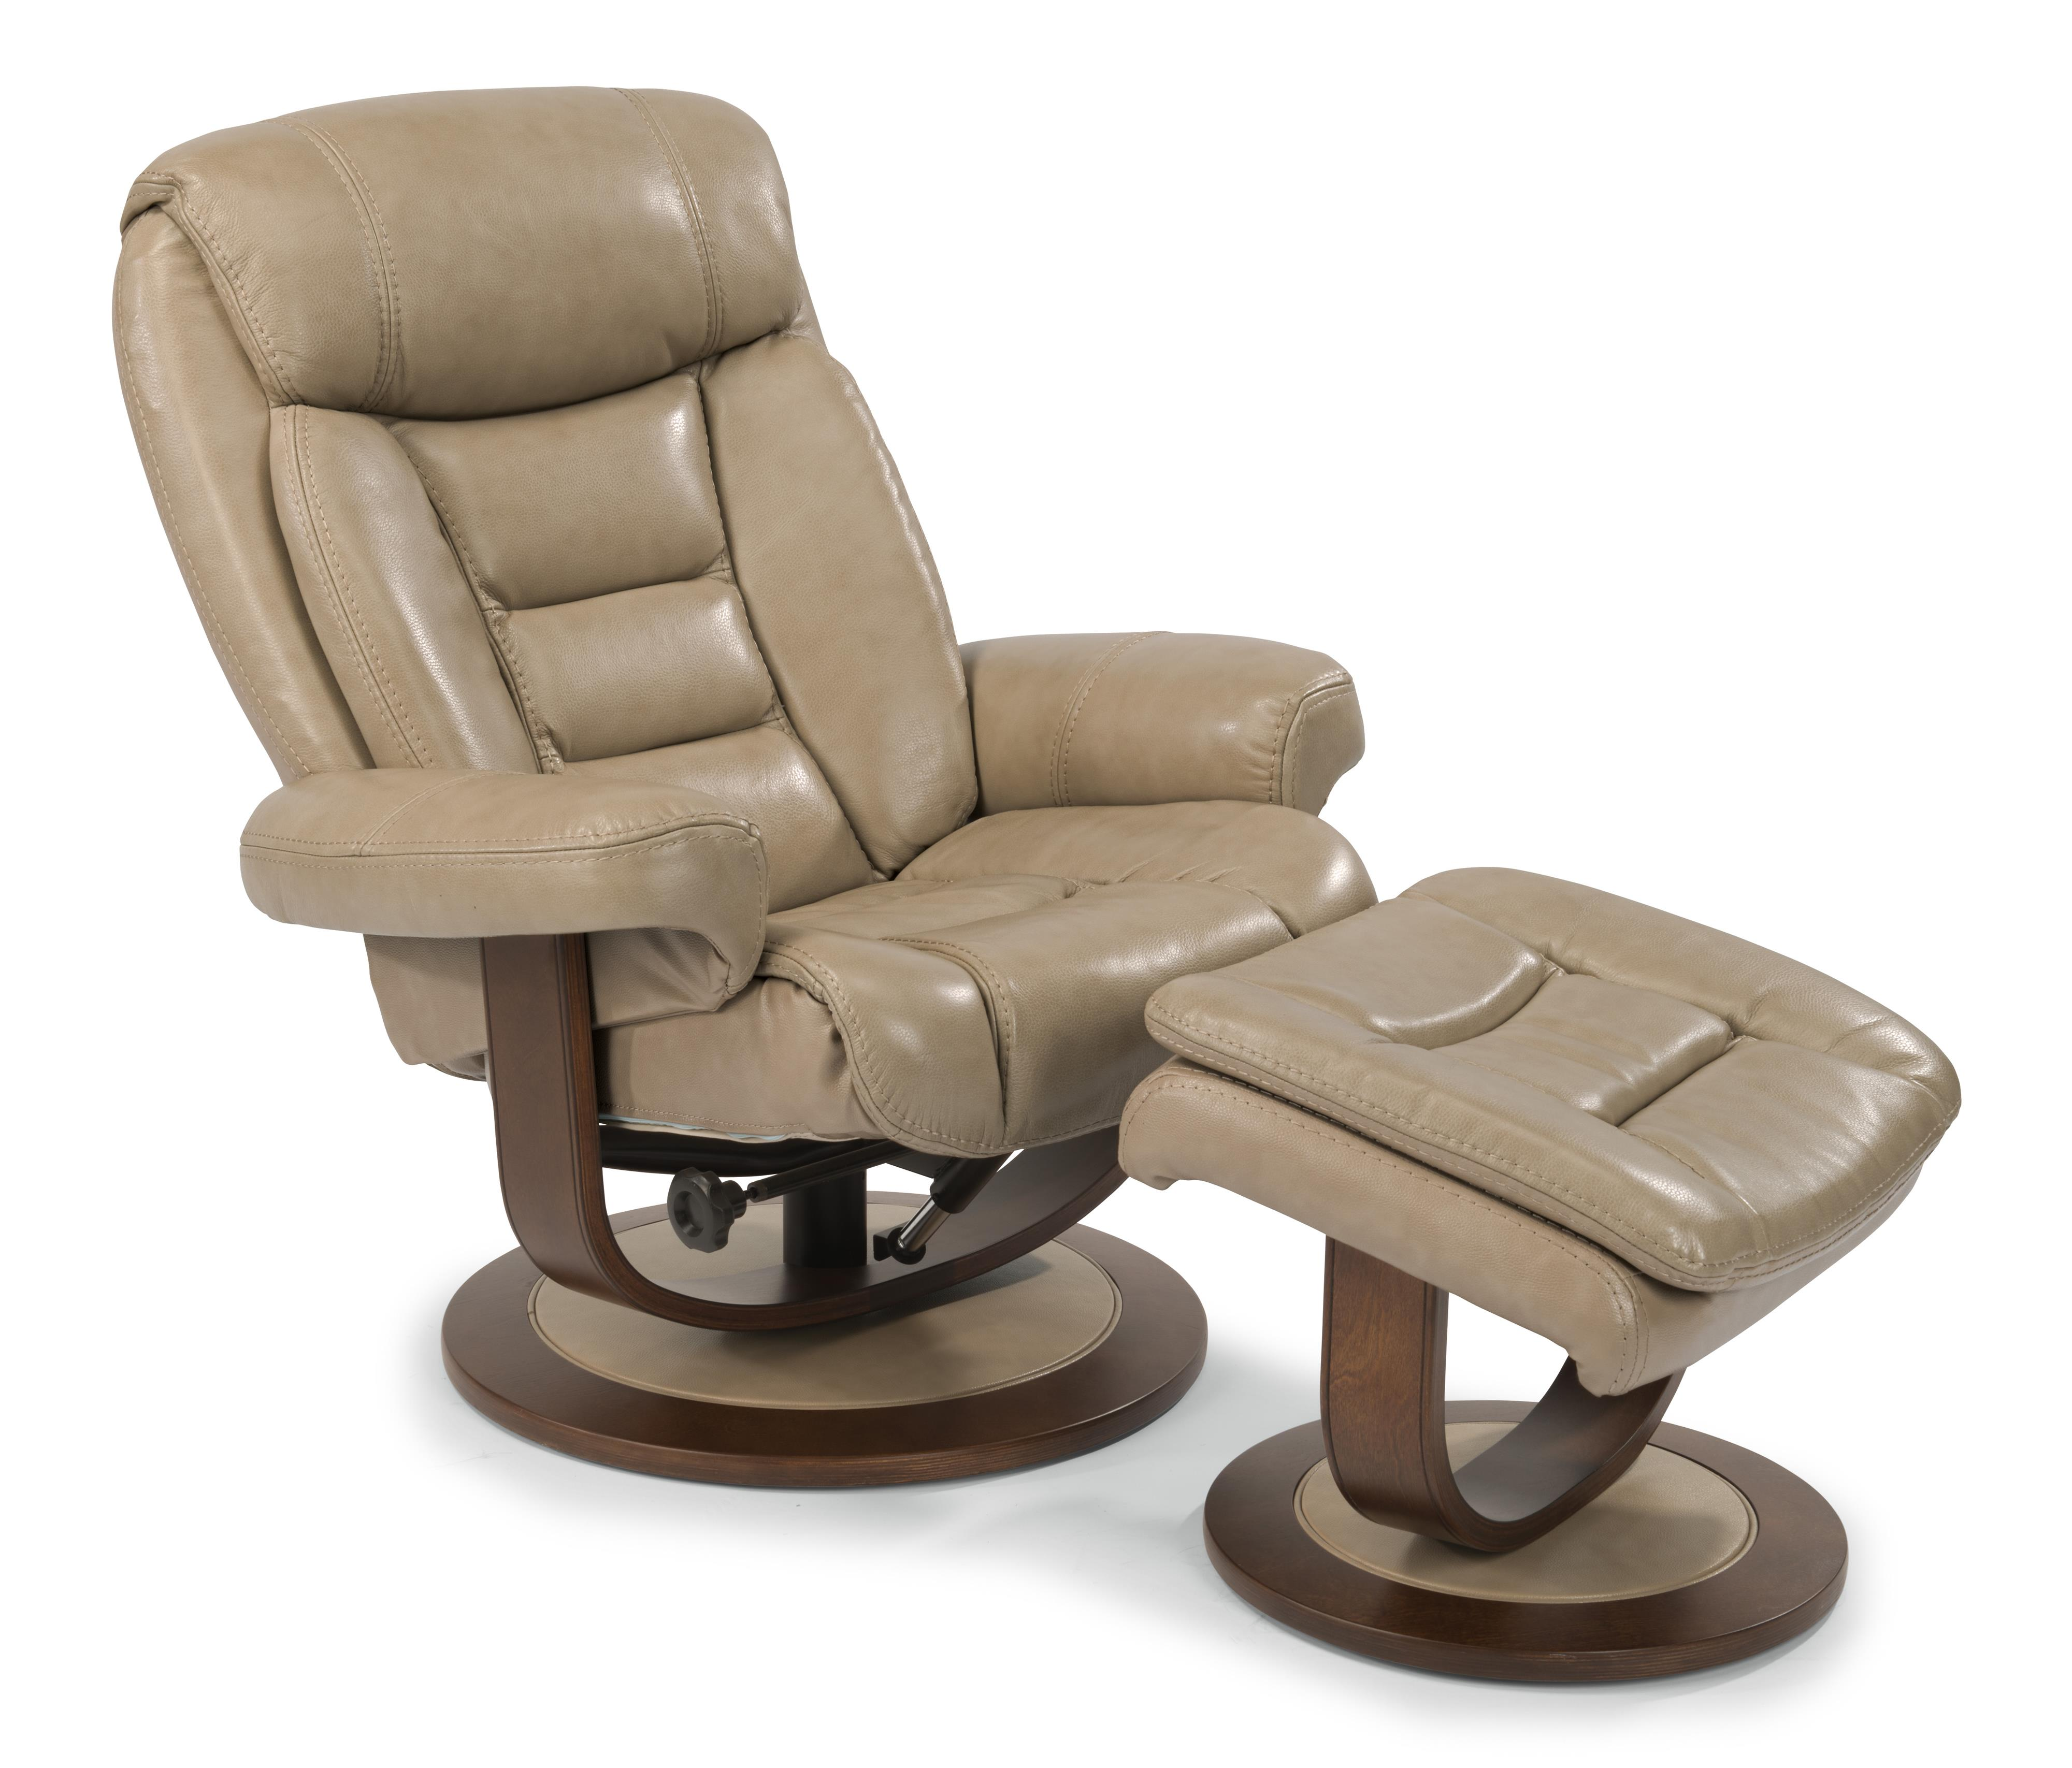 Reclining Chair And Ottoman Flexsteel Latitudes Hunter 1455 Co Reclining Chair And